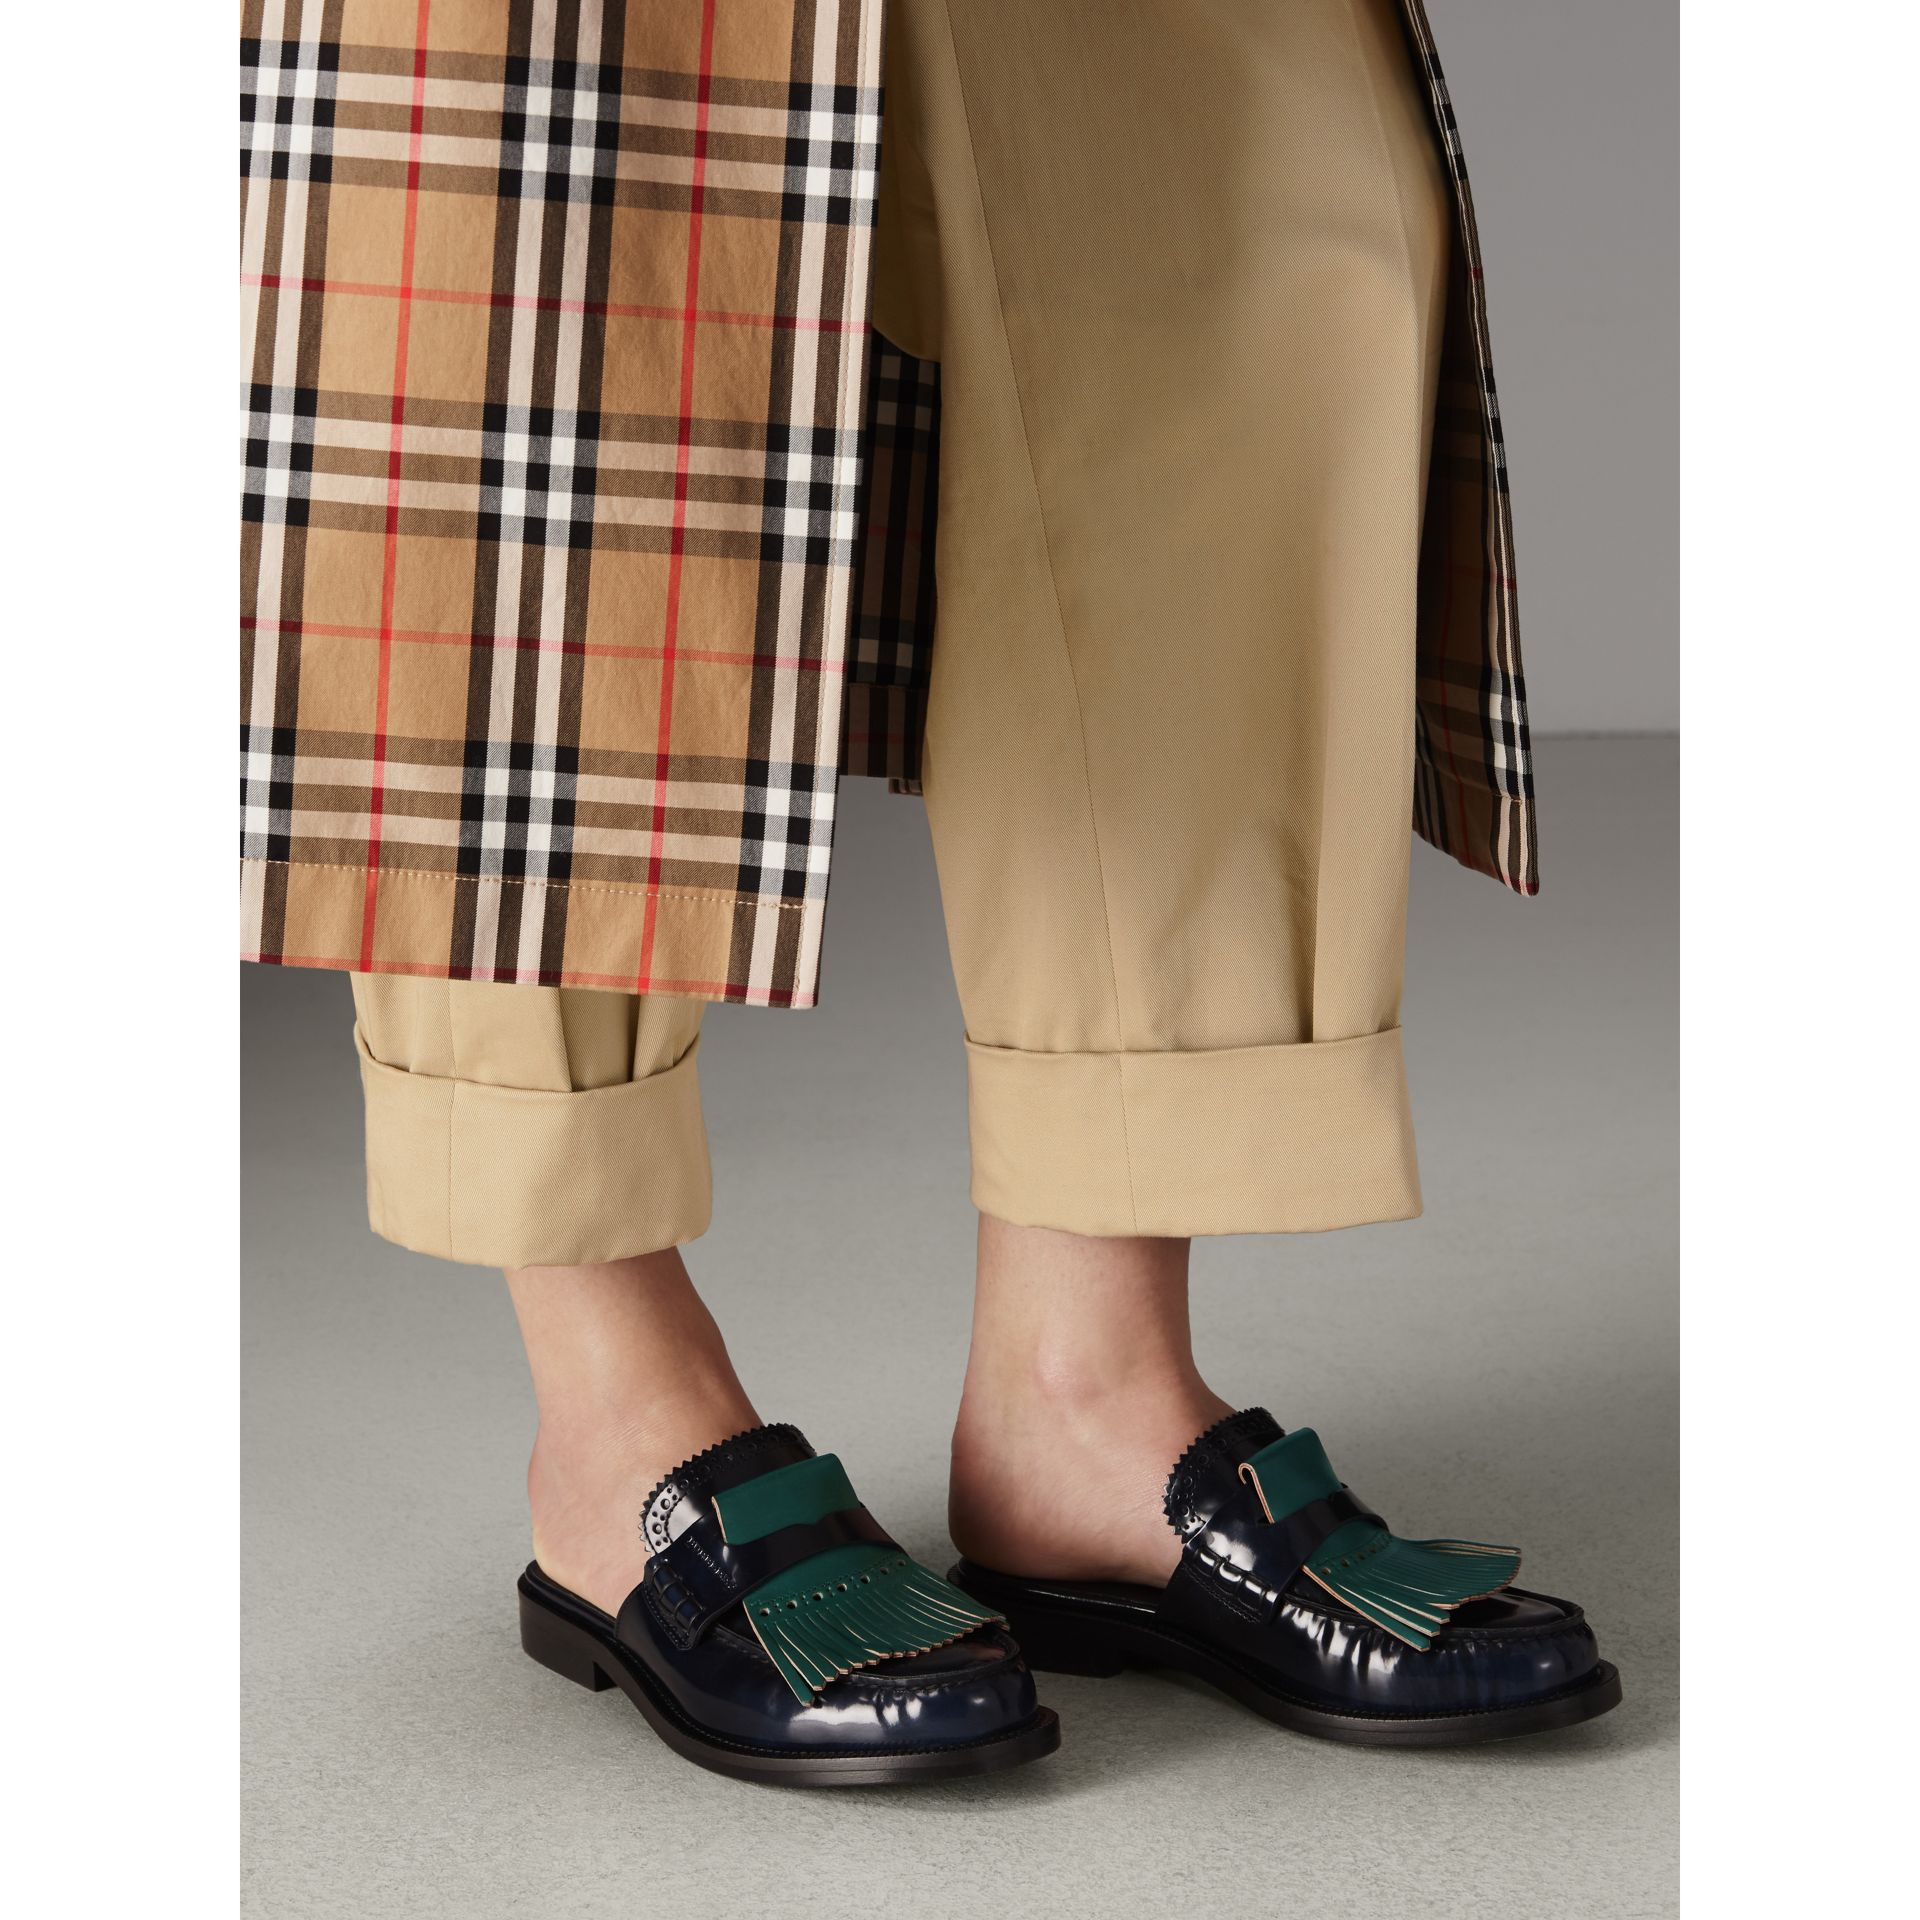 Contrast Kiltie Fringe Leather Mules in Navy - Women | Burberry Canada - gallery image 2